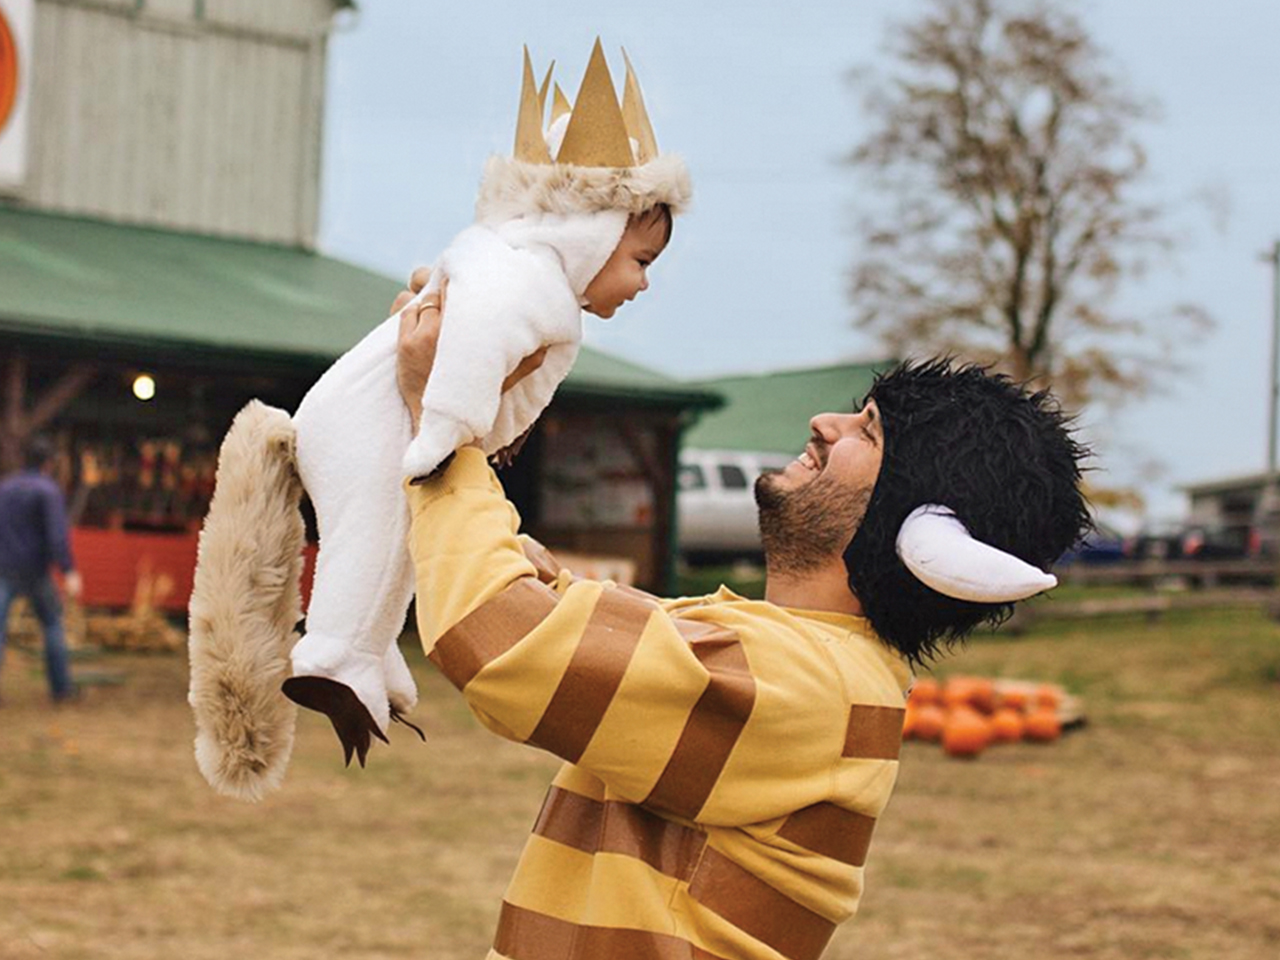 Dad lifting up daughter in the air. They are dressed as characters from Where the Wild Things Are